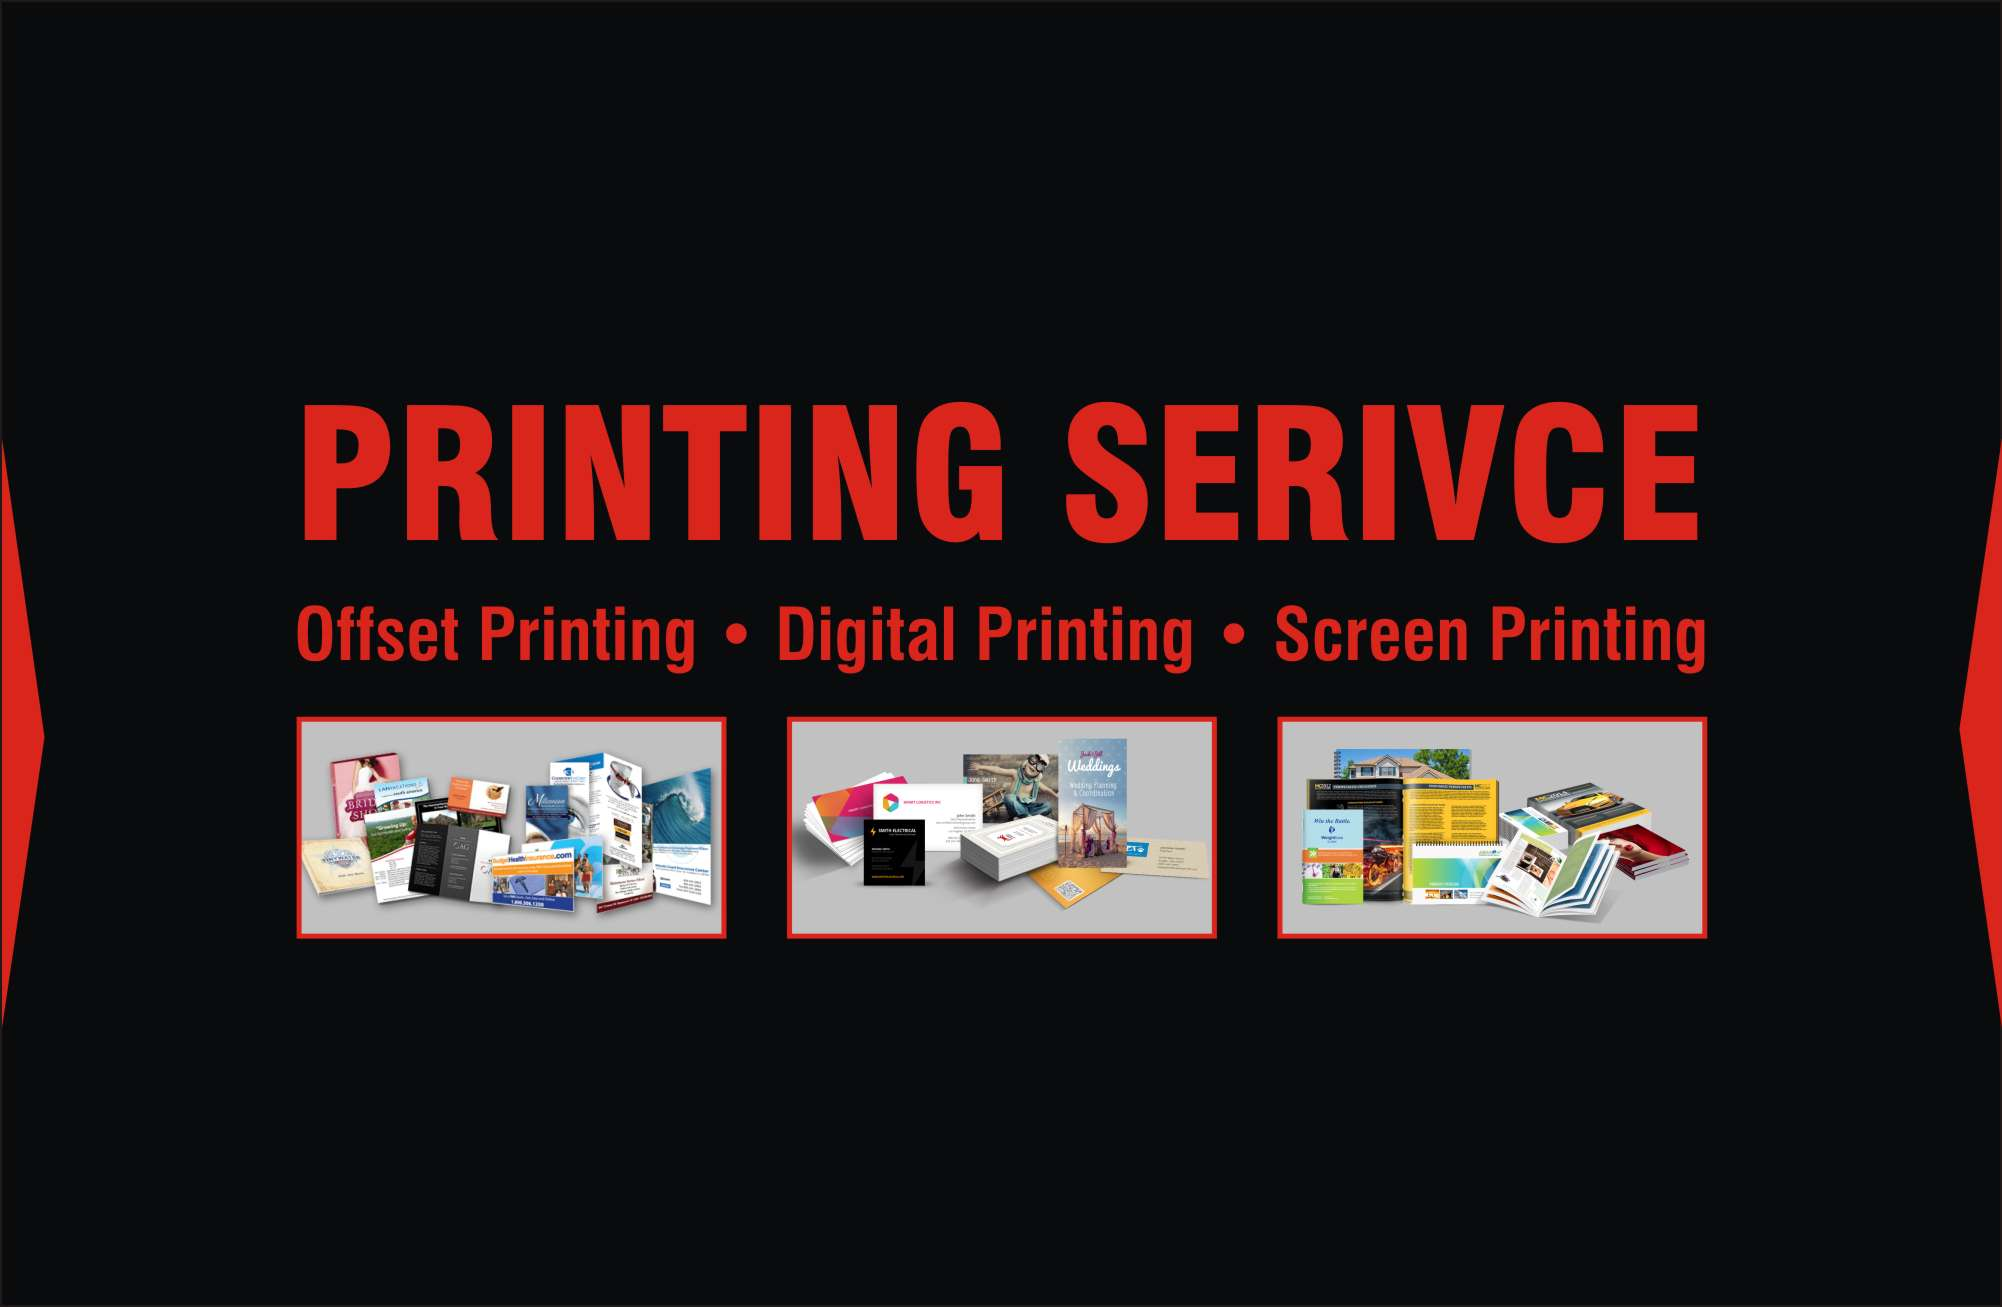 Best Place To Get Printing Done For Graphic Design Projects